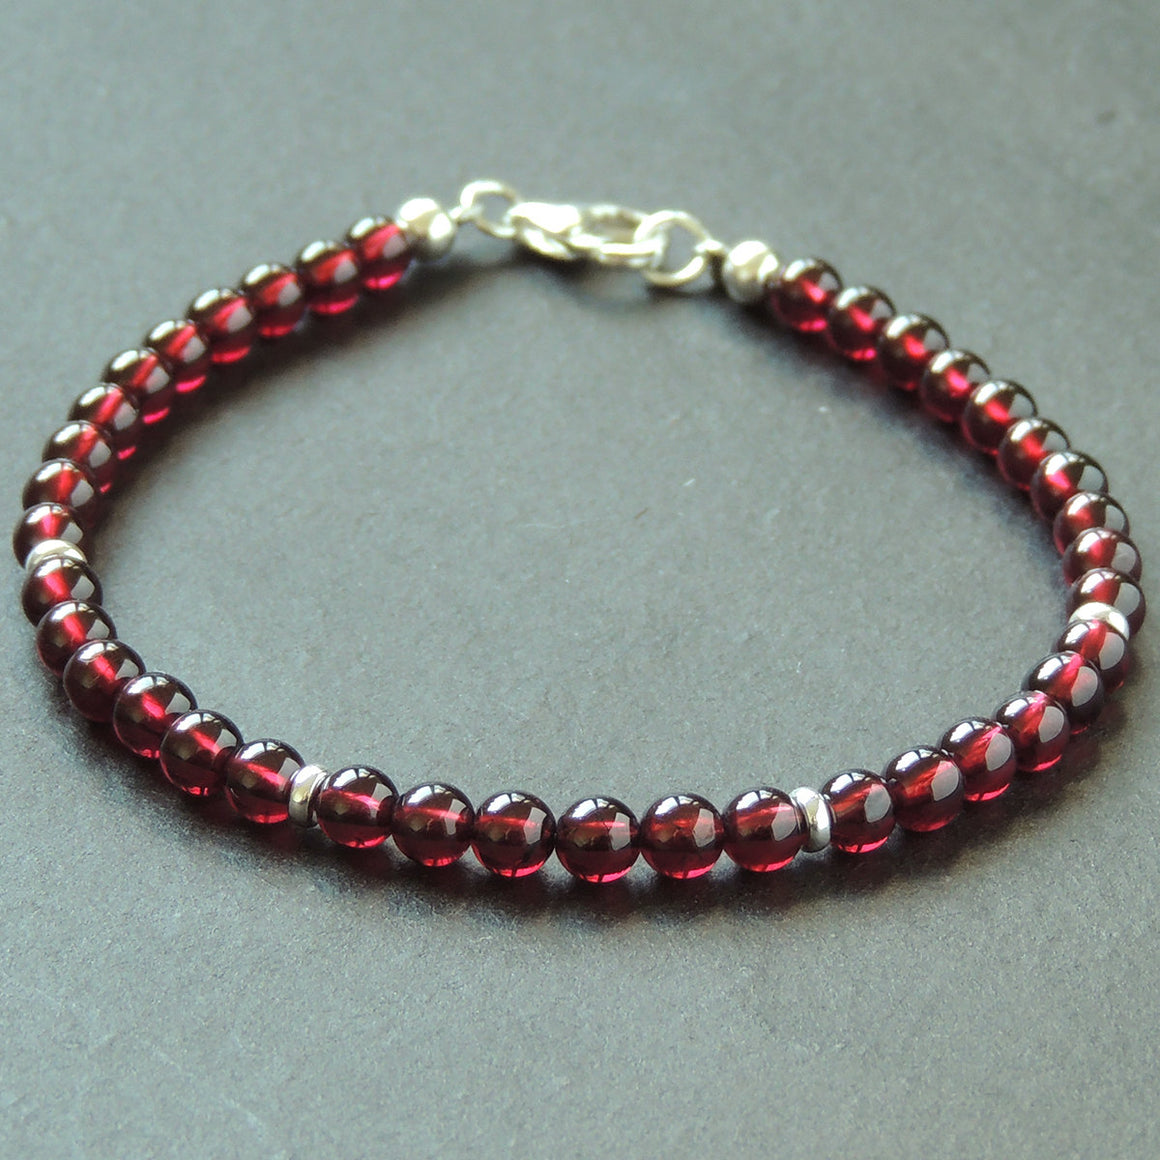 4.5mm Grade AAA Garnet Healing Gemstone Bracelet with S925 Sterling Silver Spacer Beads & Clasp - Handmade by Gem & Silver BR641